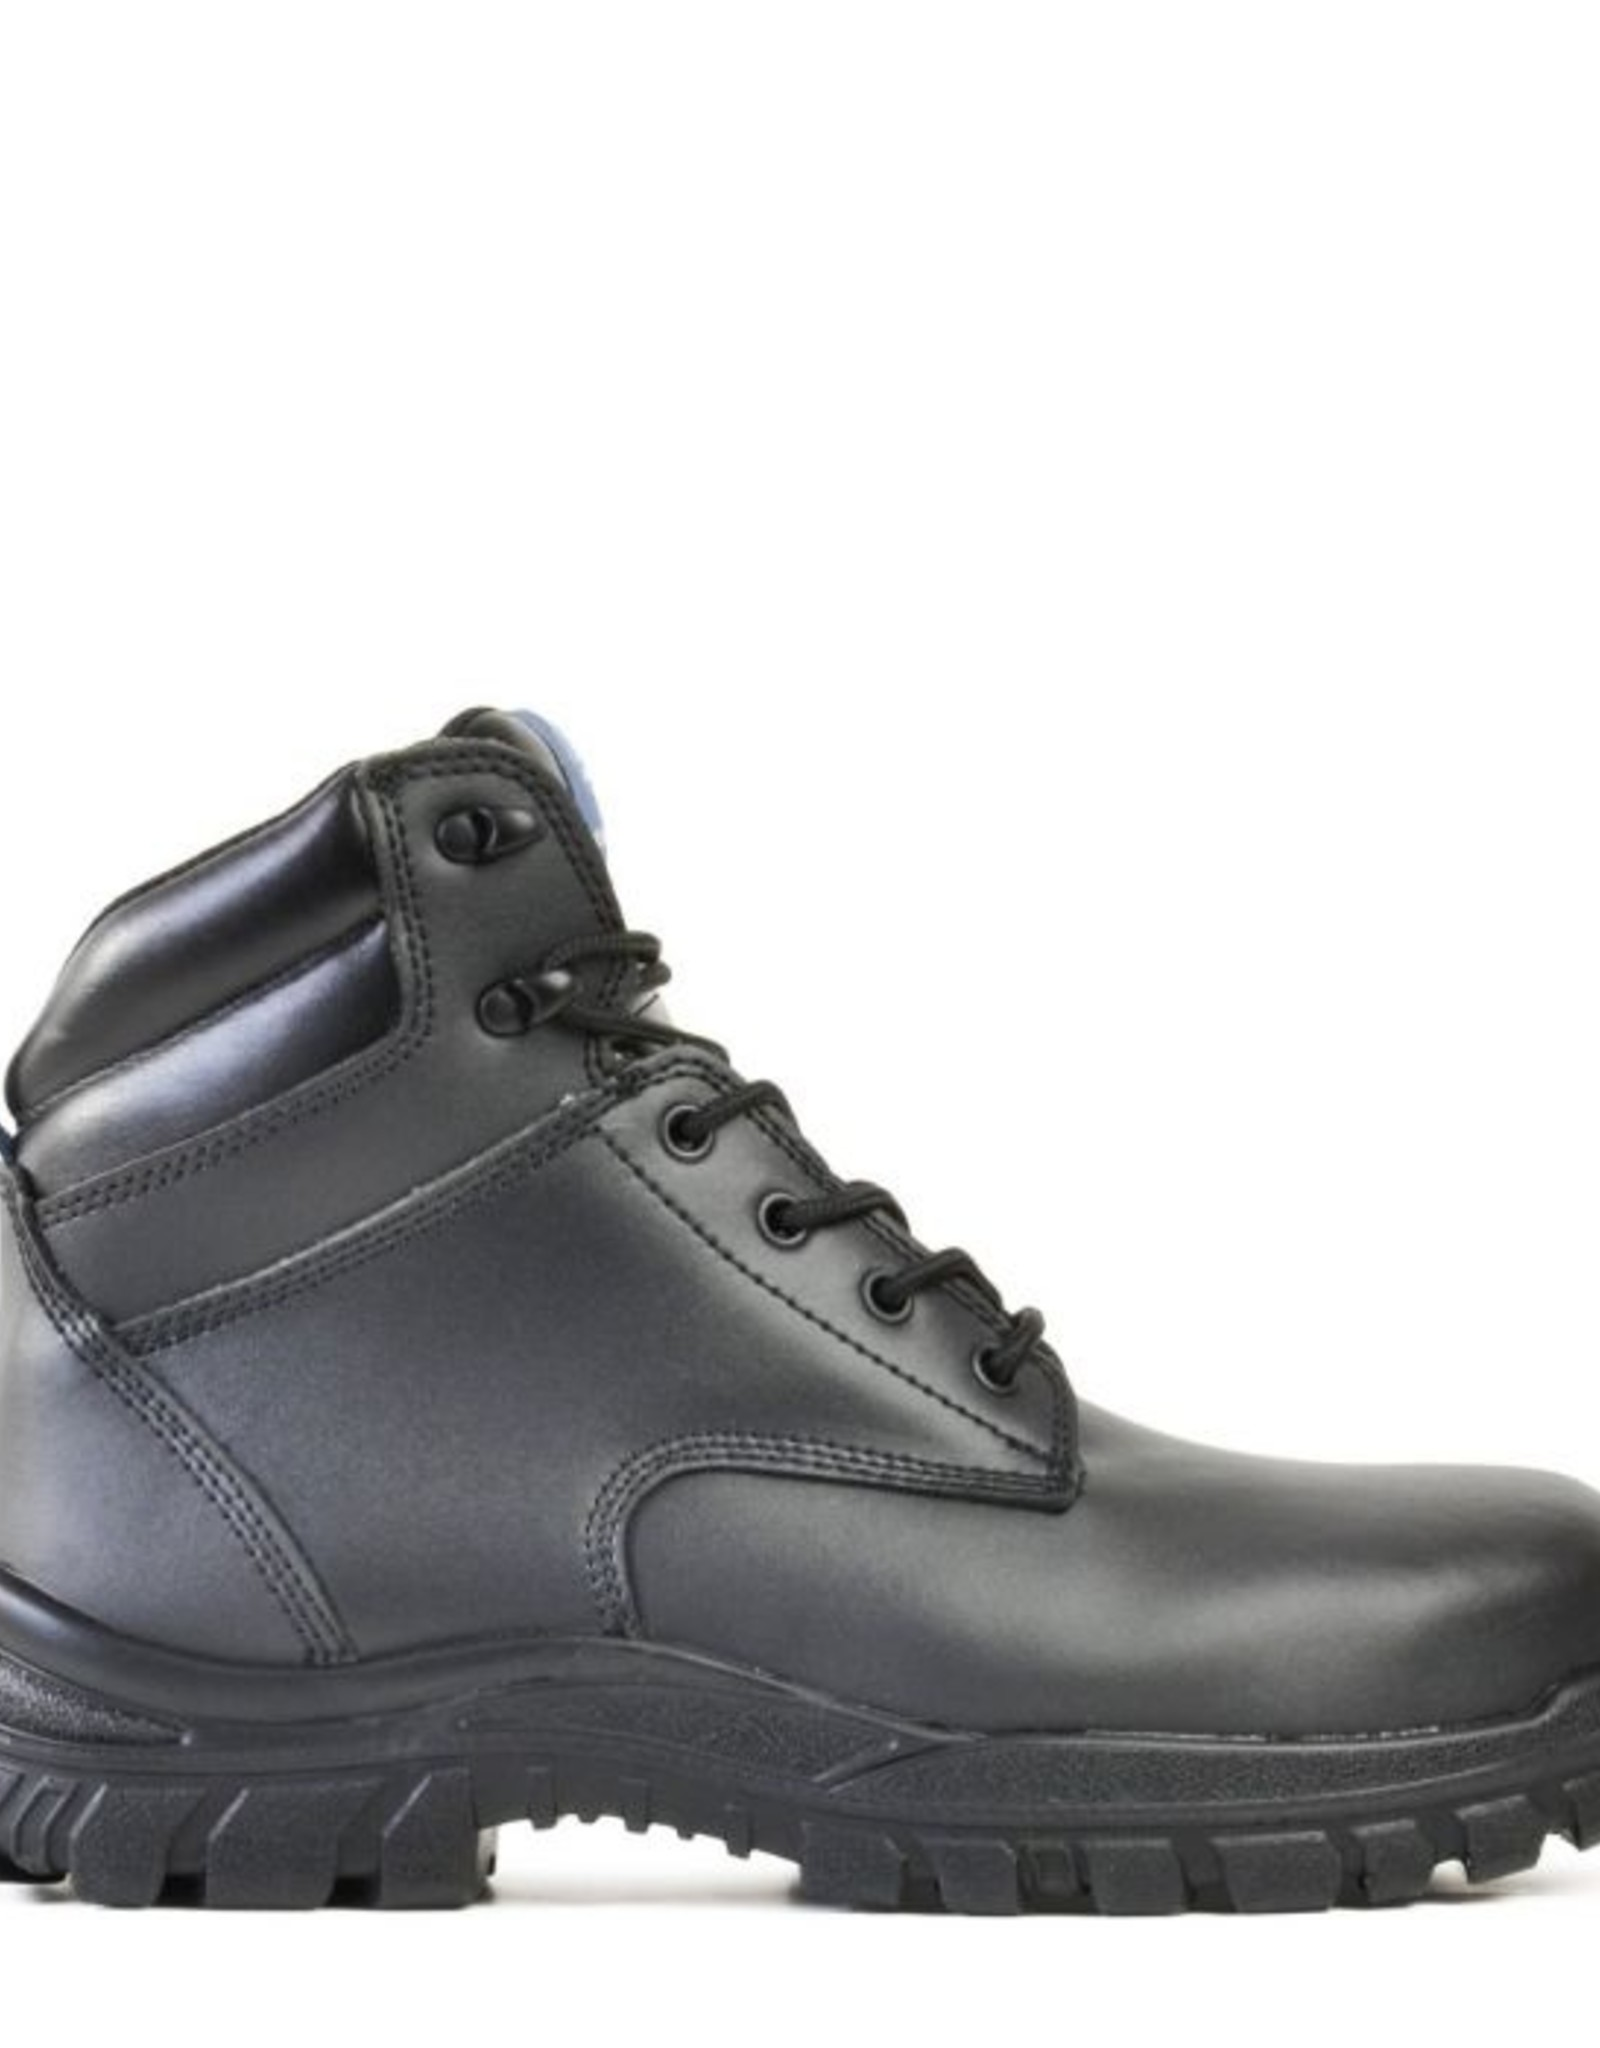 Bata Bata Saturn Lace Up Hiker Steel Cap Boot